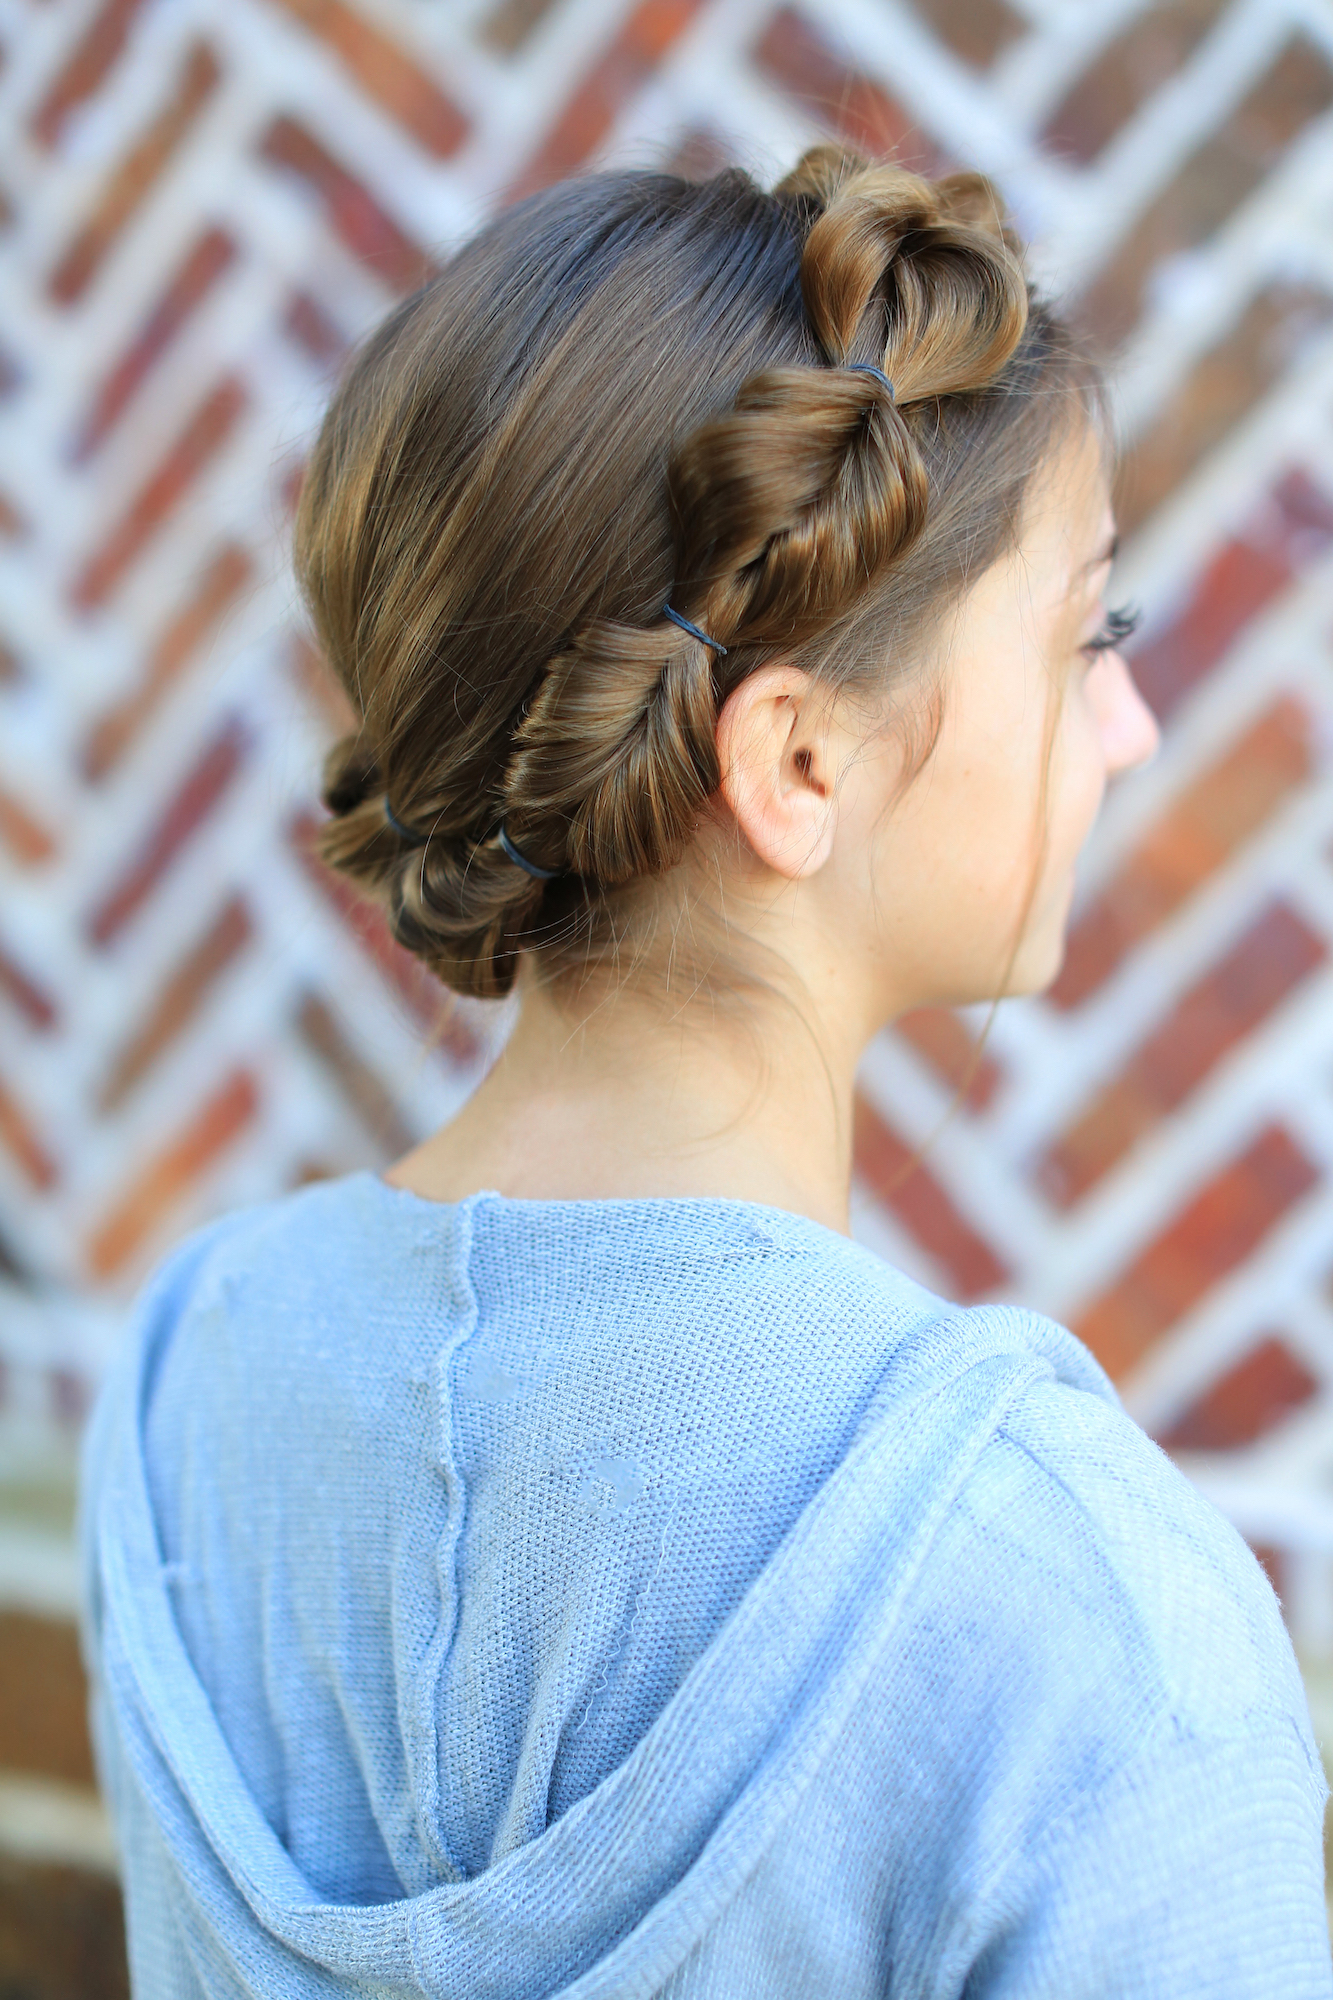 How To Create A Faux Fishtail Crown Braid (View 9 of 20)